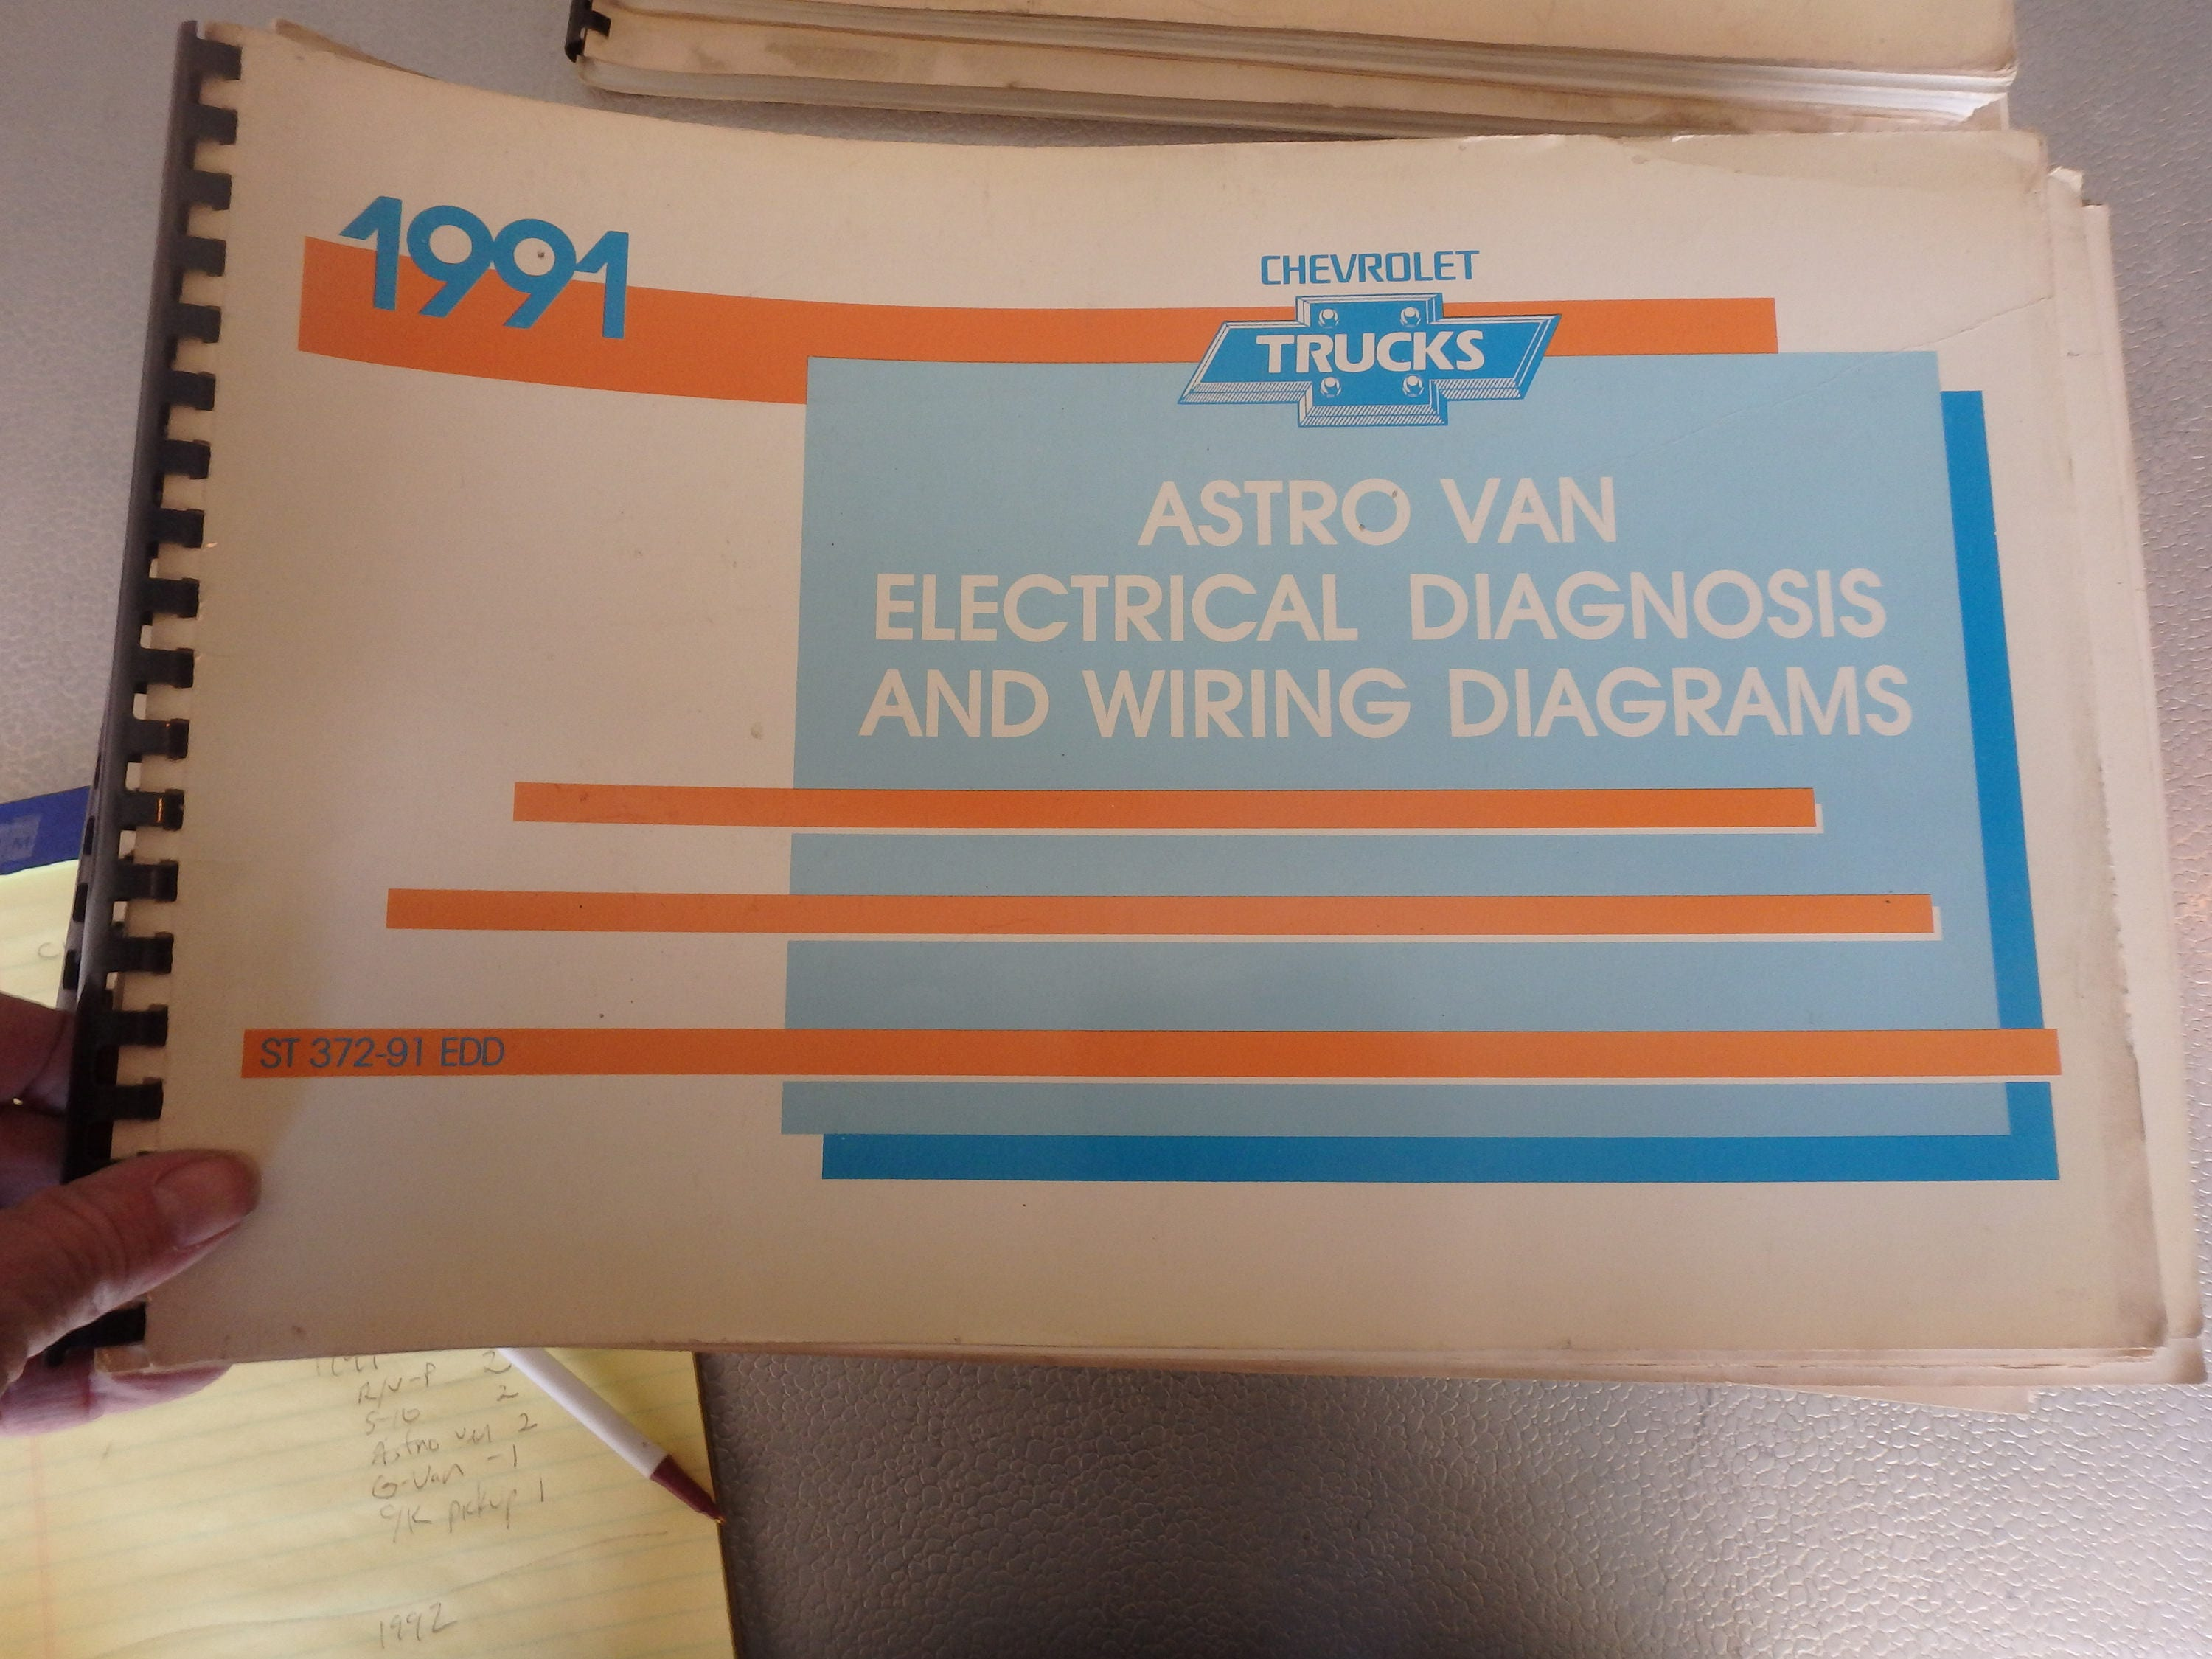 1991 Chevrolet Electrical Diagnosis And Diagrams Astro Van Etsy 2004 Chevy Diagram Wiring Schematic Zoom